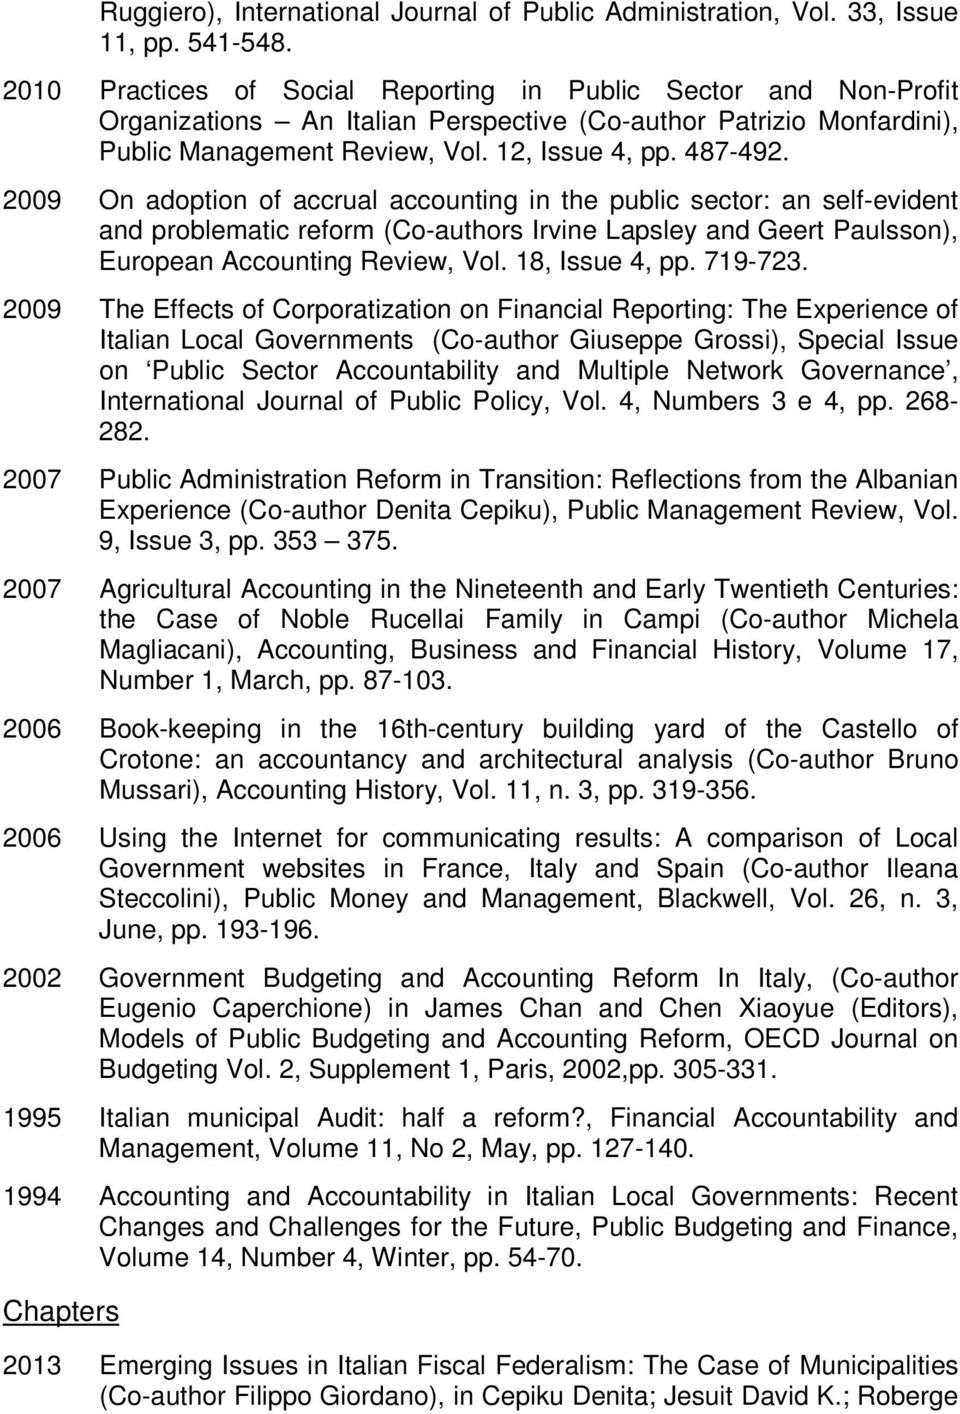 2009 On adoption of accrual accounting in the public sector: an self-evident and problematic reform (Co-authors Irvine Lapsley and Geert Paulsson), European Accounting Review, Vol. 18, Issue 4, pp.